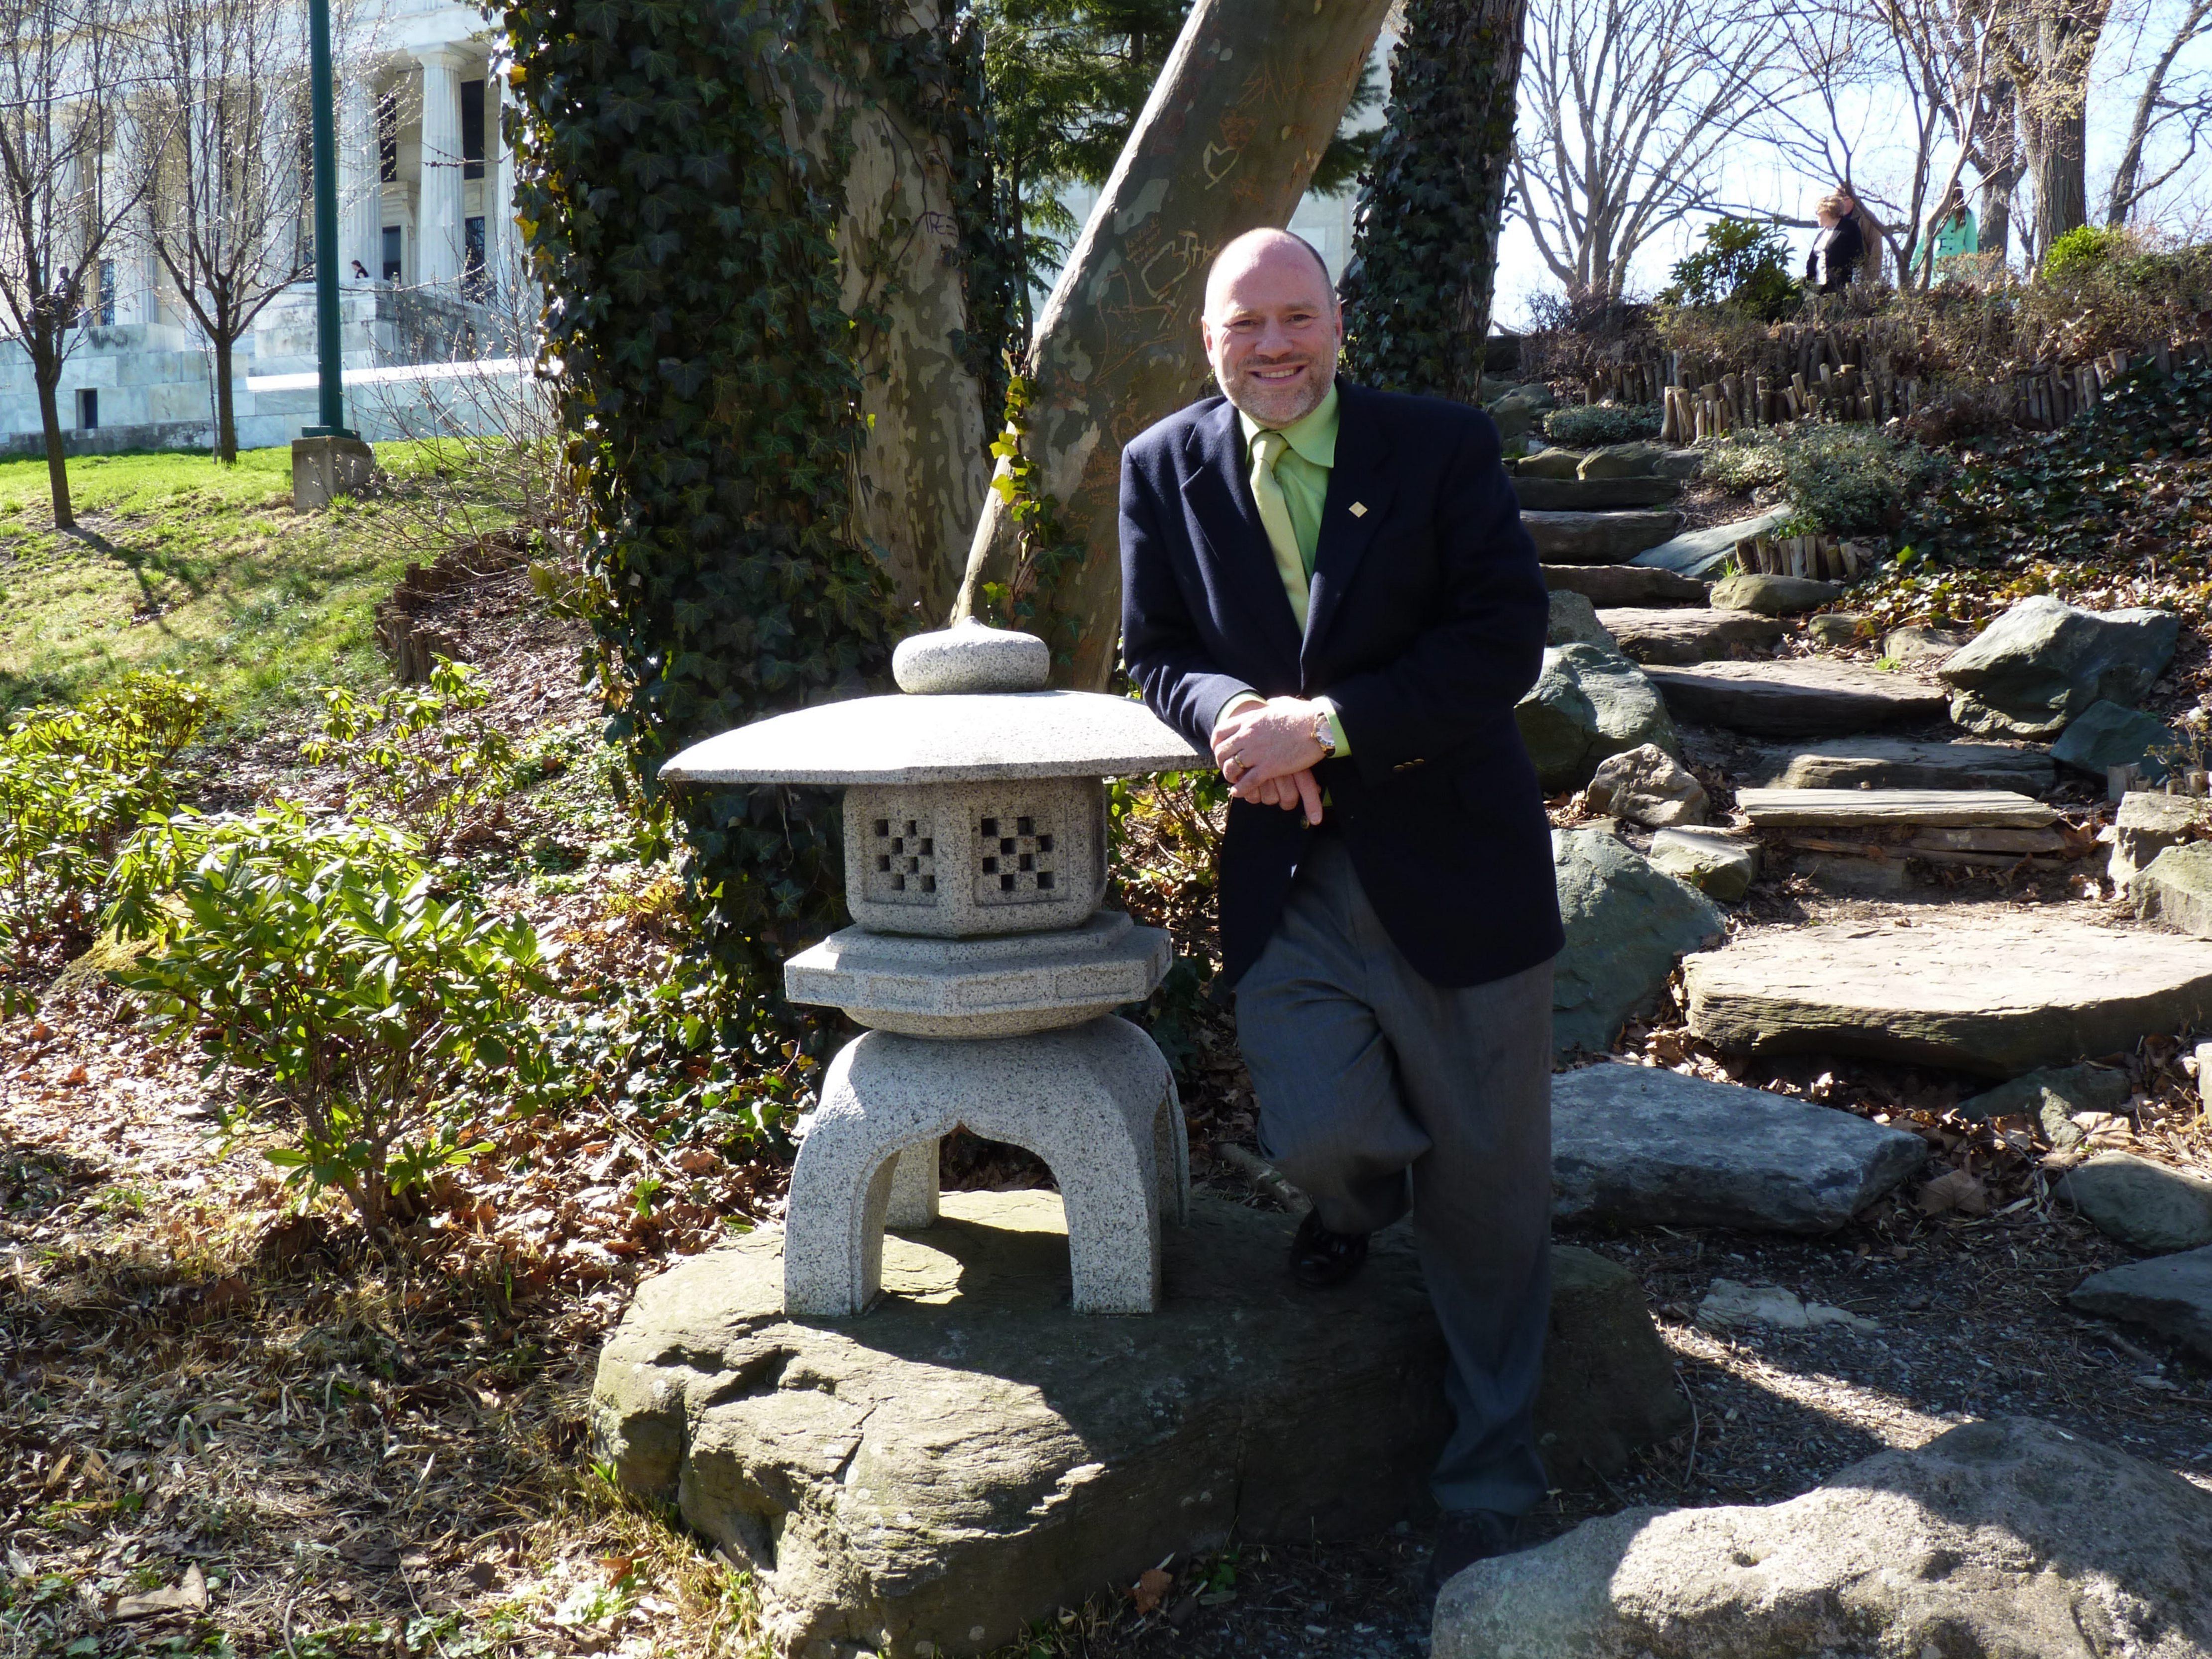 Thomas Herrera-Mishler posed last year with one of three stone lanterns that define the Japanese Garden in Delaware Park.